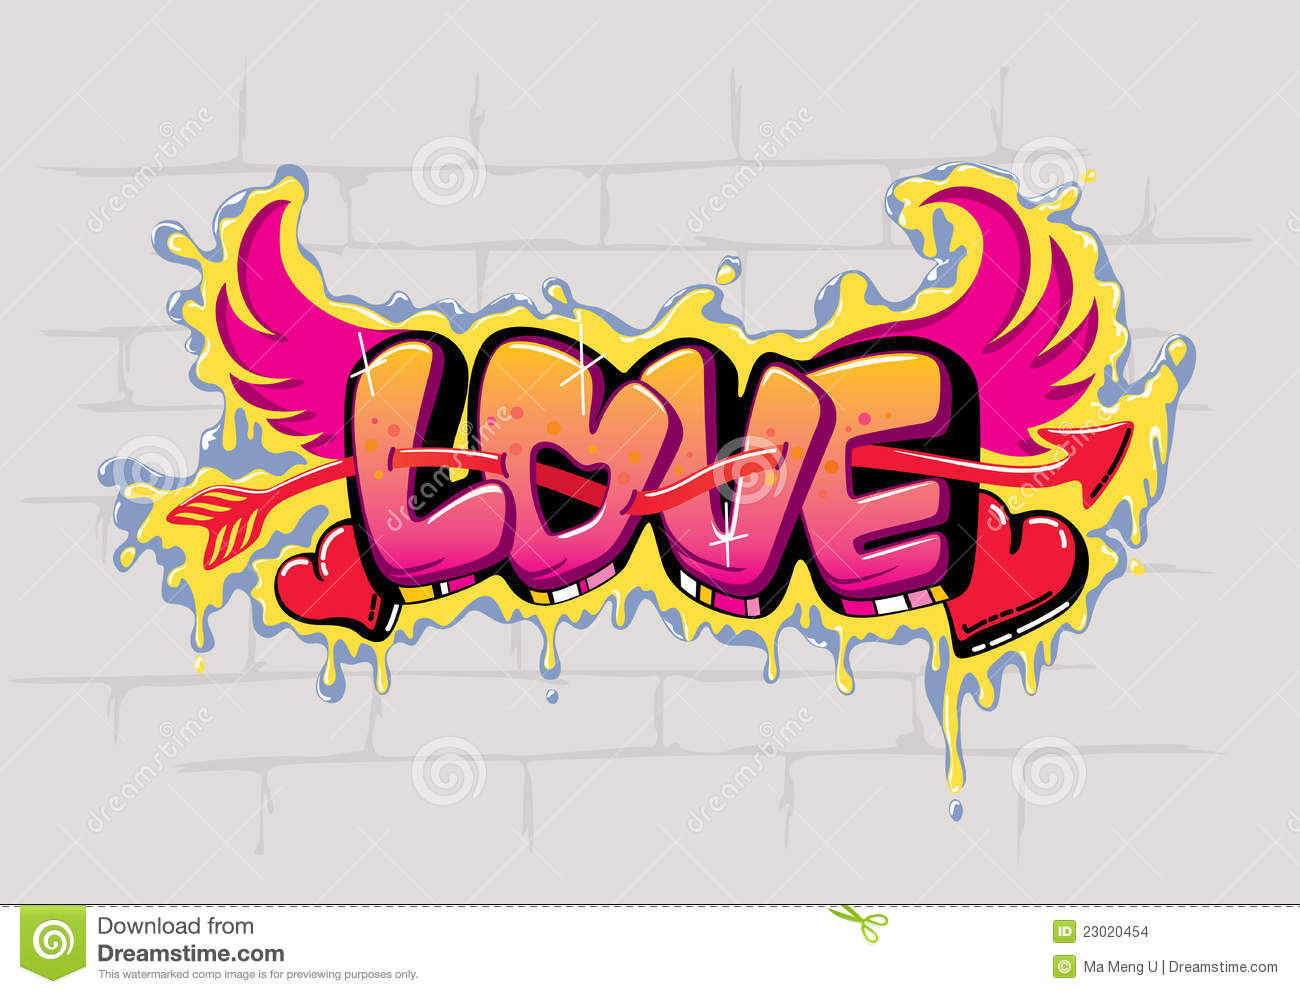 Love graffiti design stock images image 23020454 The designlover